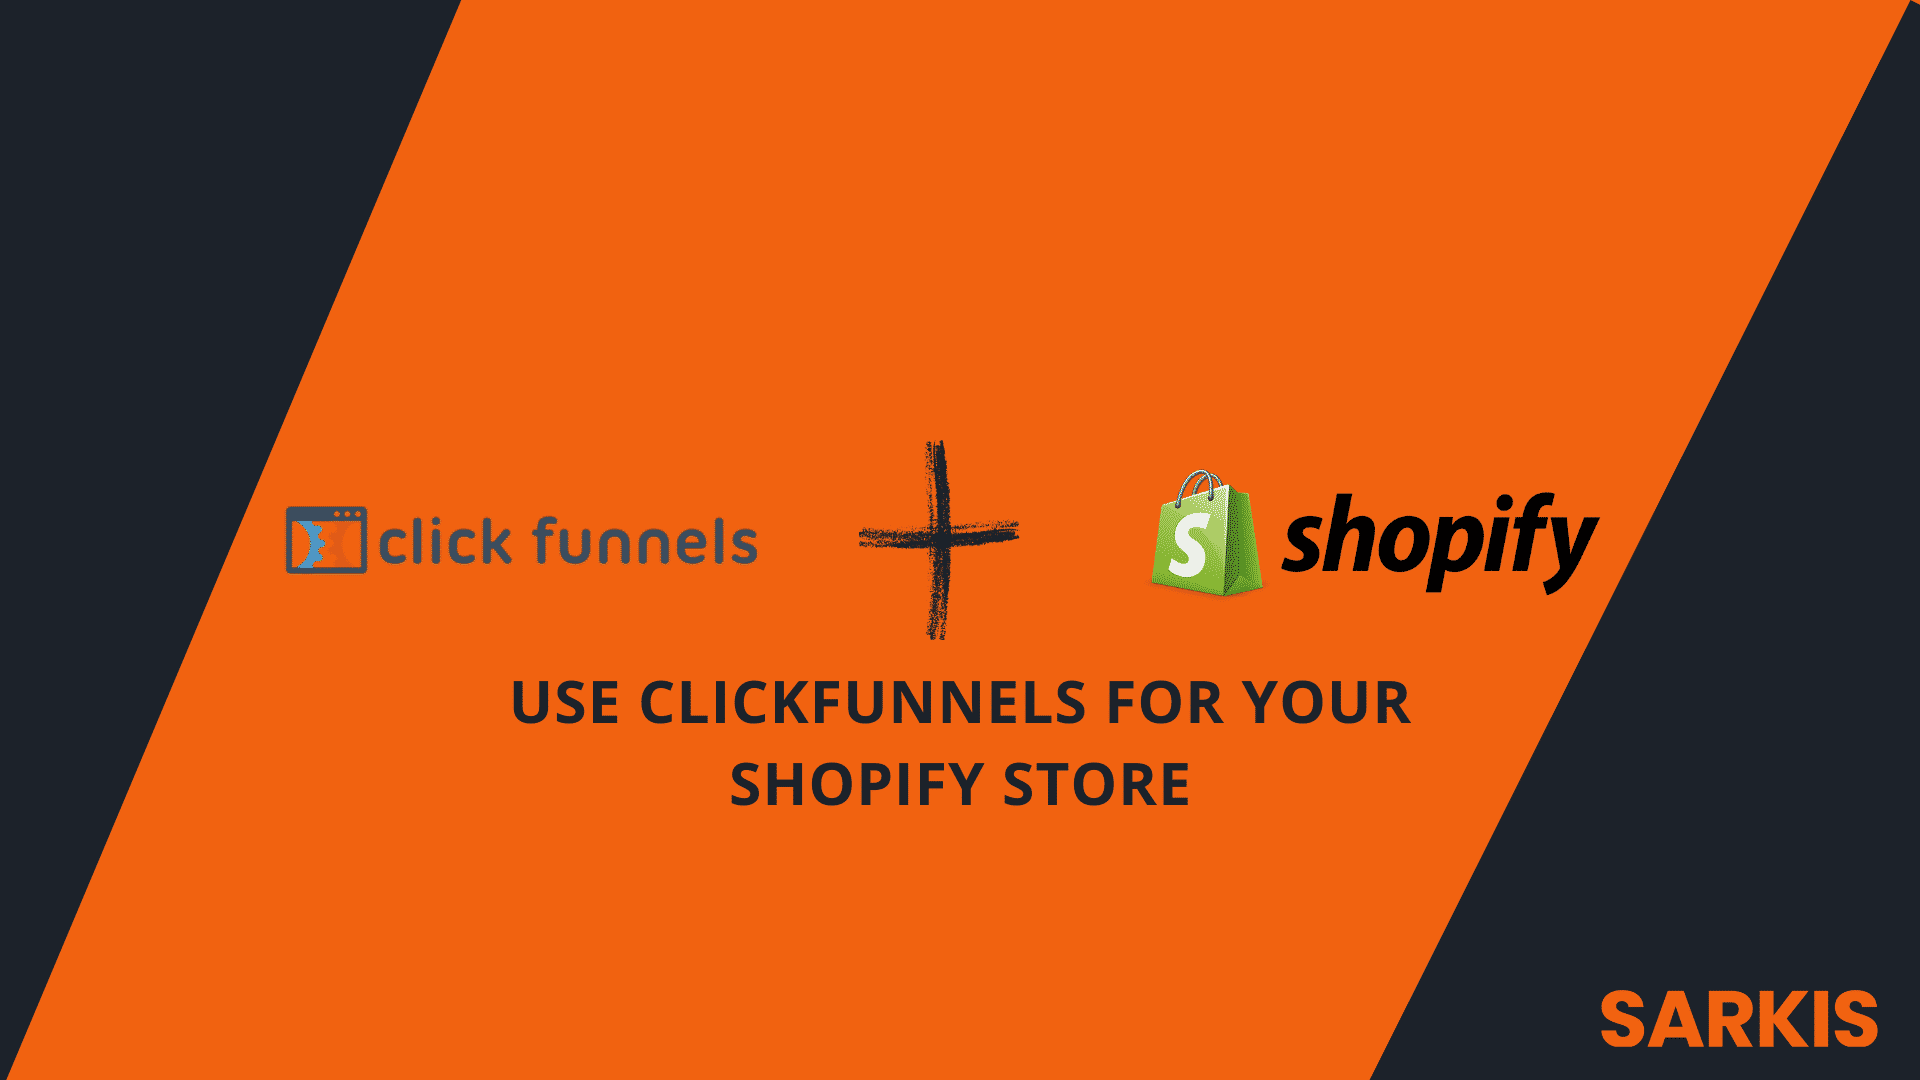 use clickfunnels for your shopify store